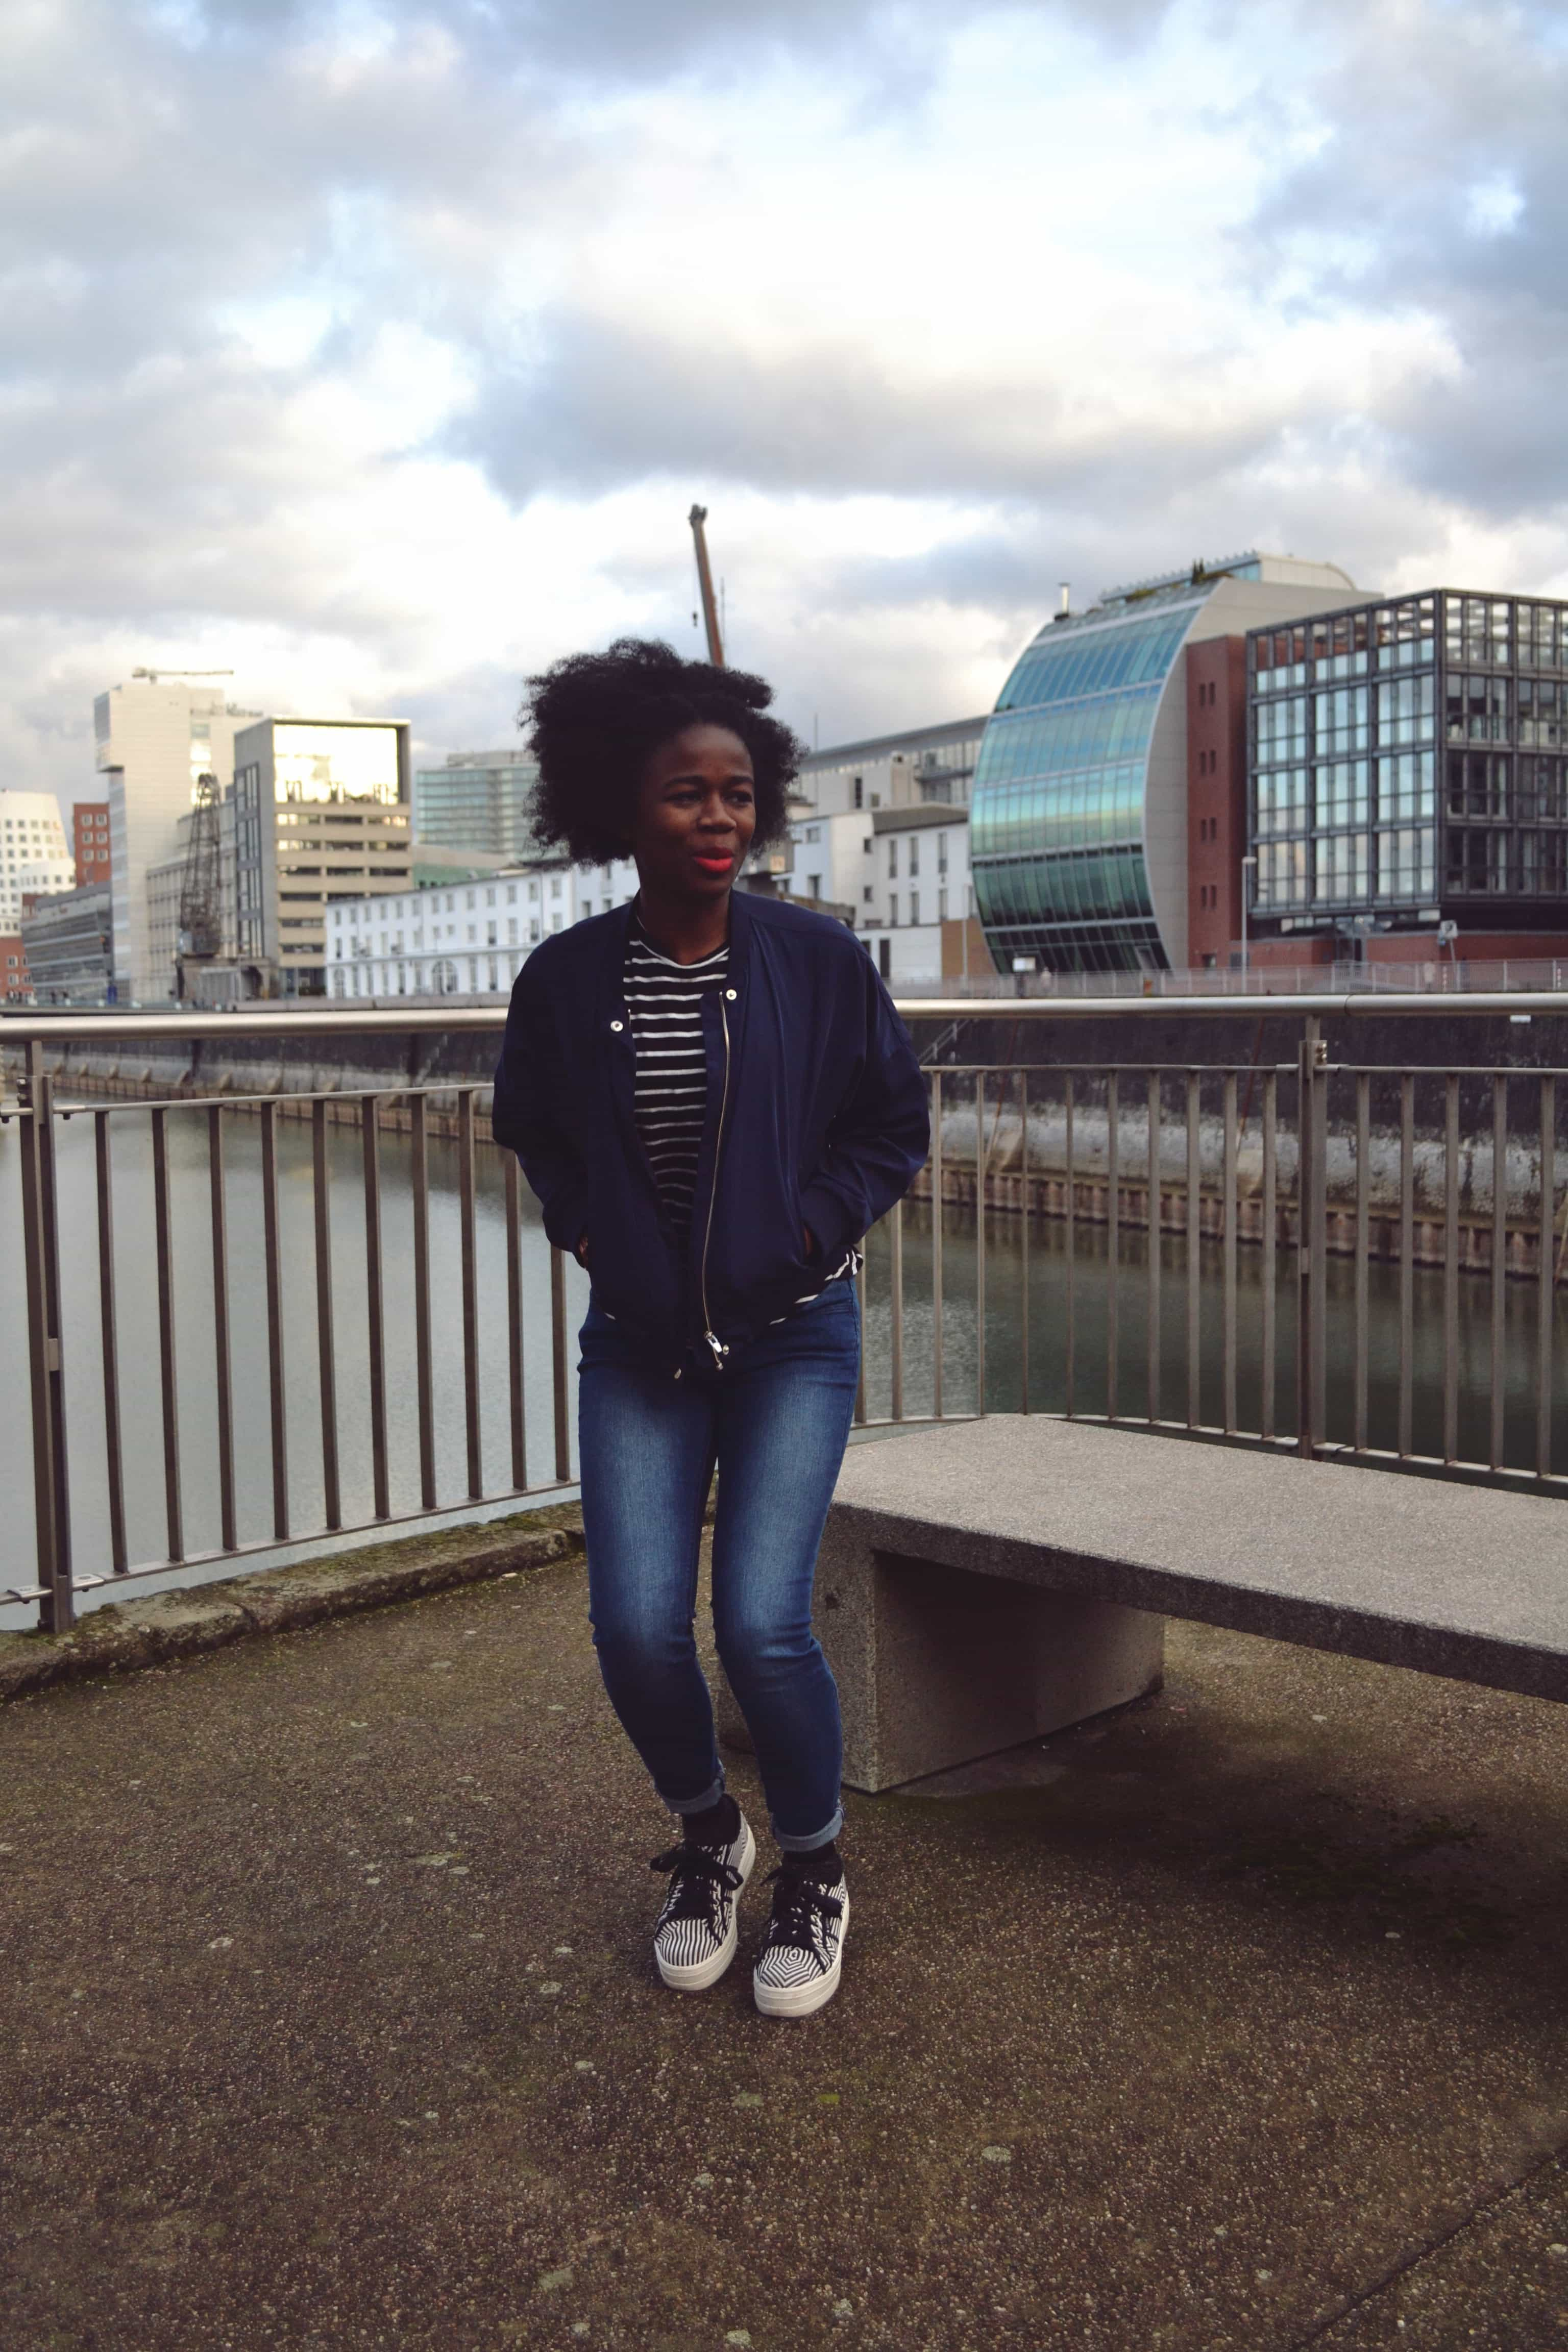 A woman with an afro wearing a navy blue bomber jacket, a black and white stripy t-shirt, blue skinny jeans and black and white stripy platform shoes lands on the floor, looking away from the camera, with city buildings and a blue sky in the background.